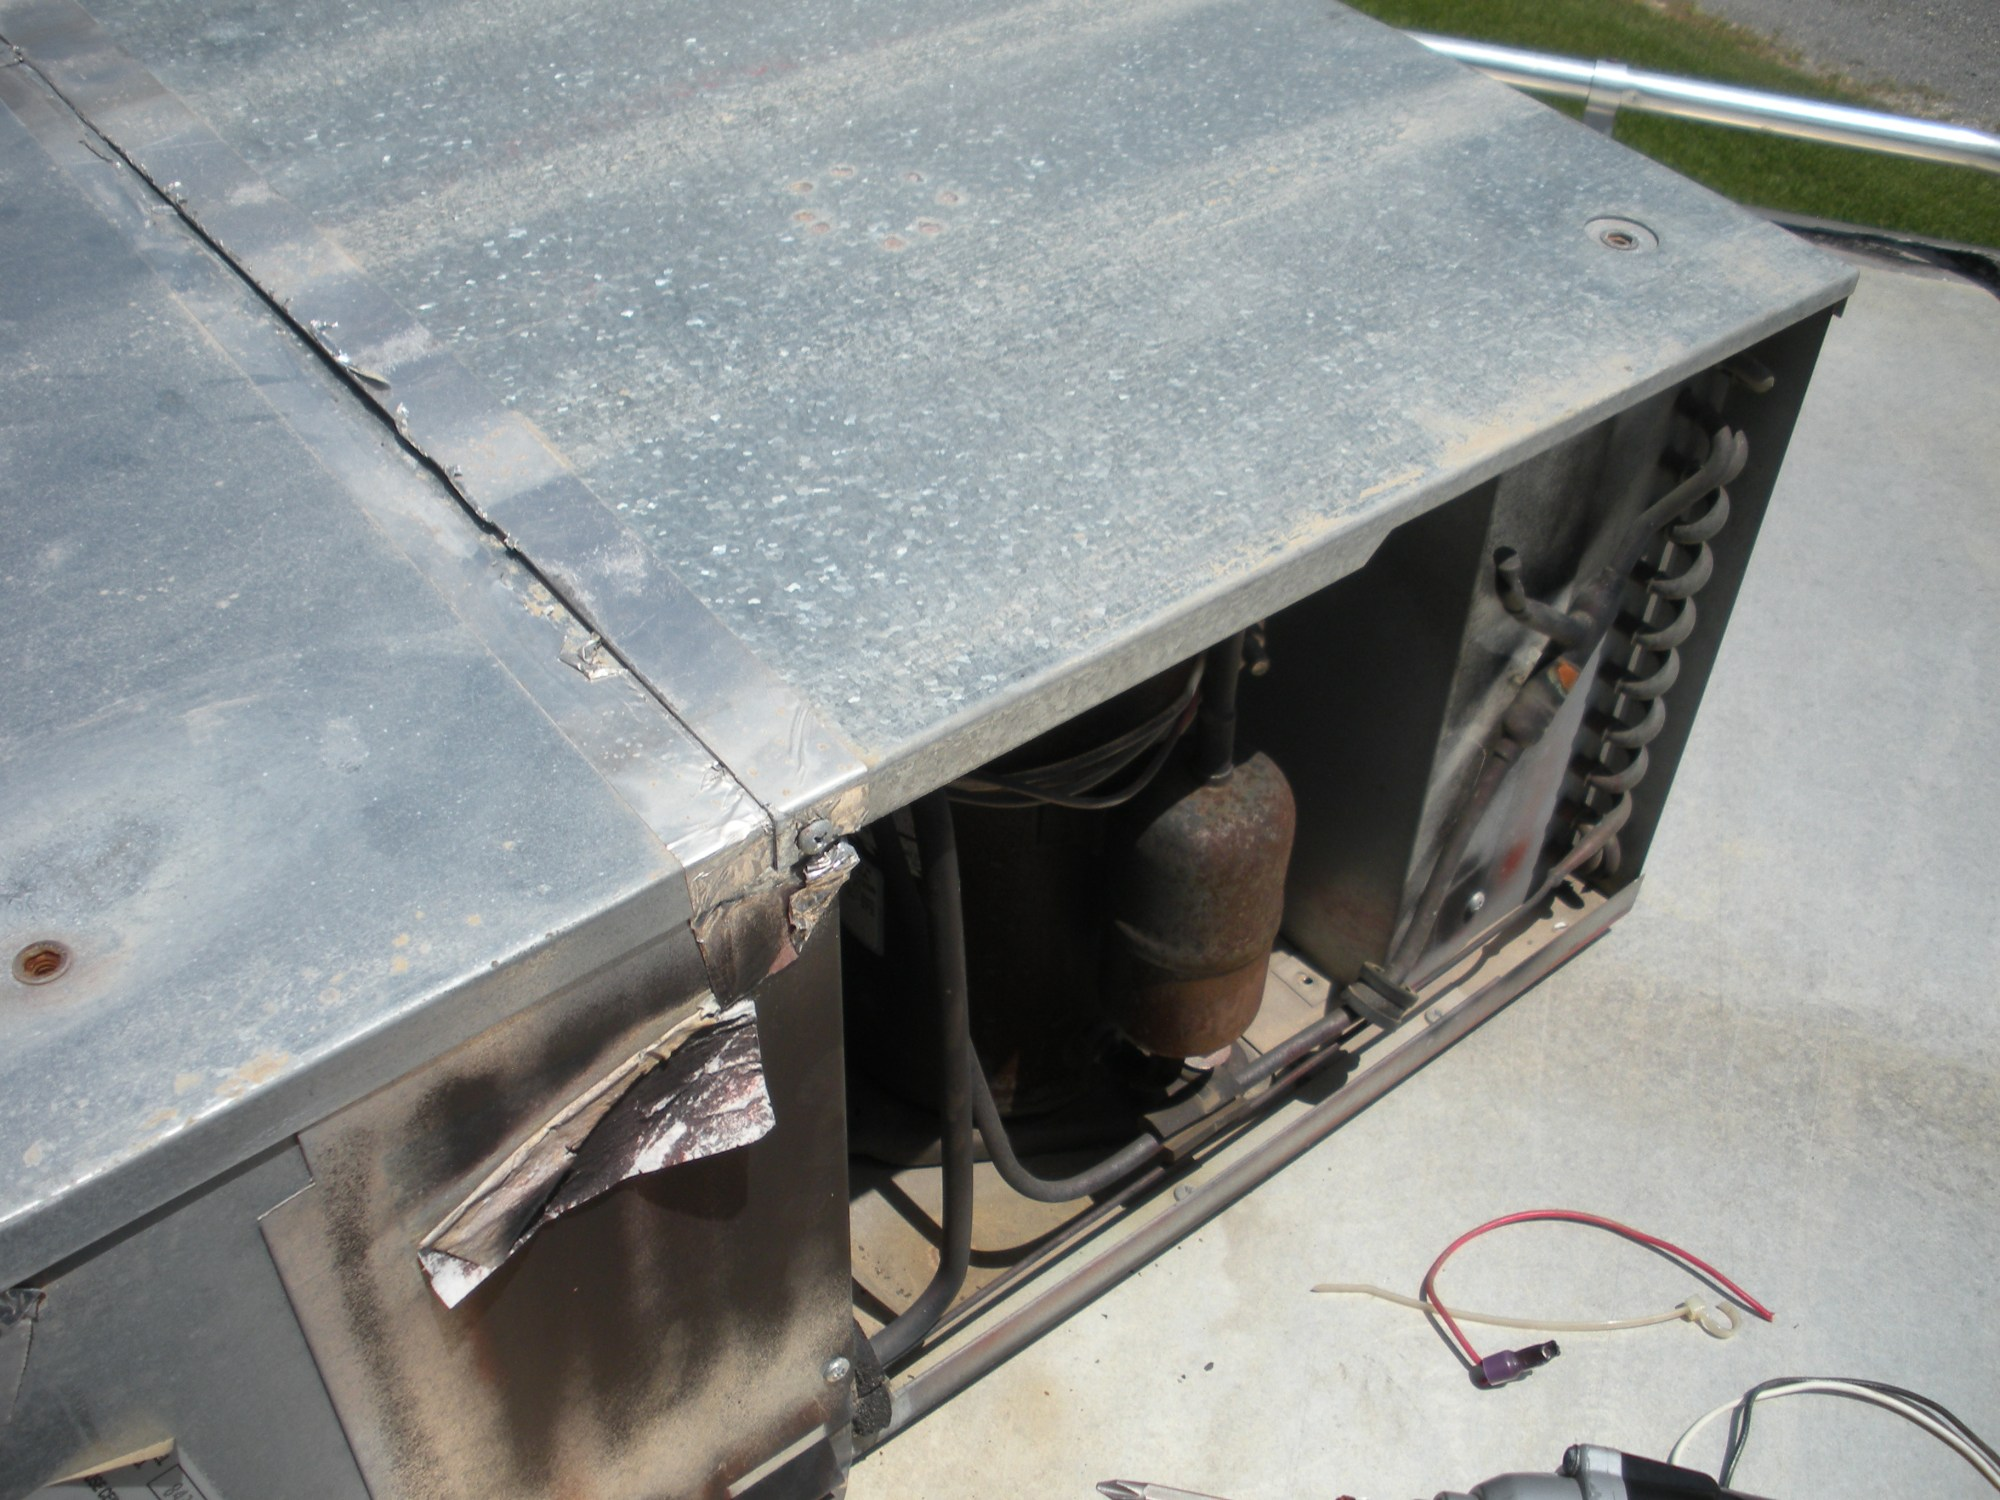 hight resolution of panel over compressor and electrical access cover will need to be removed